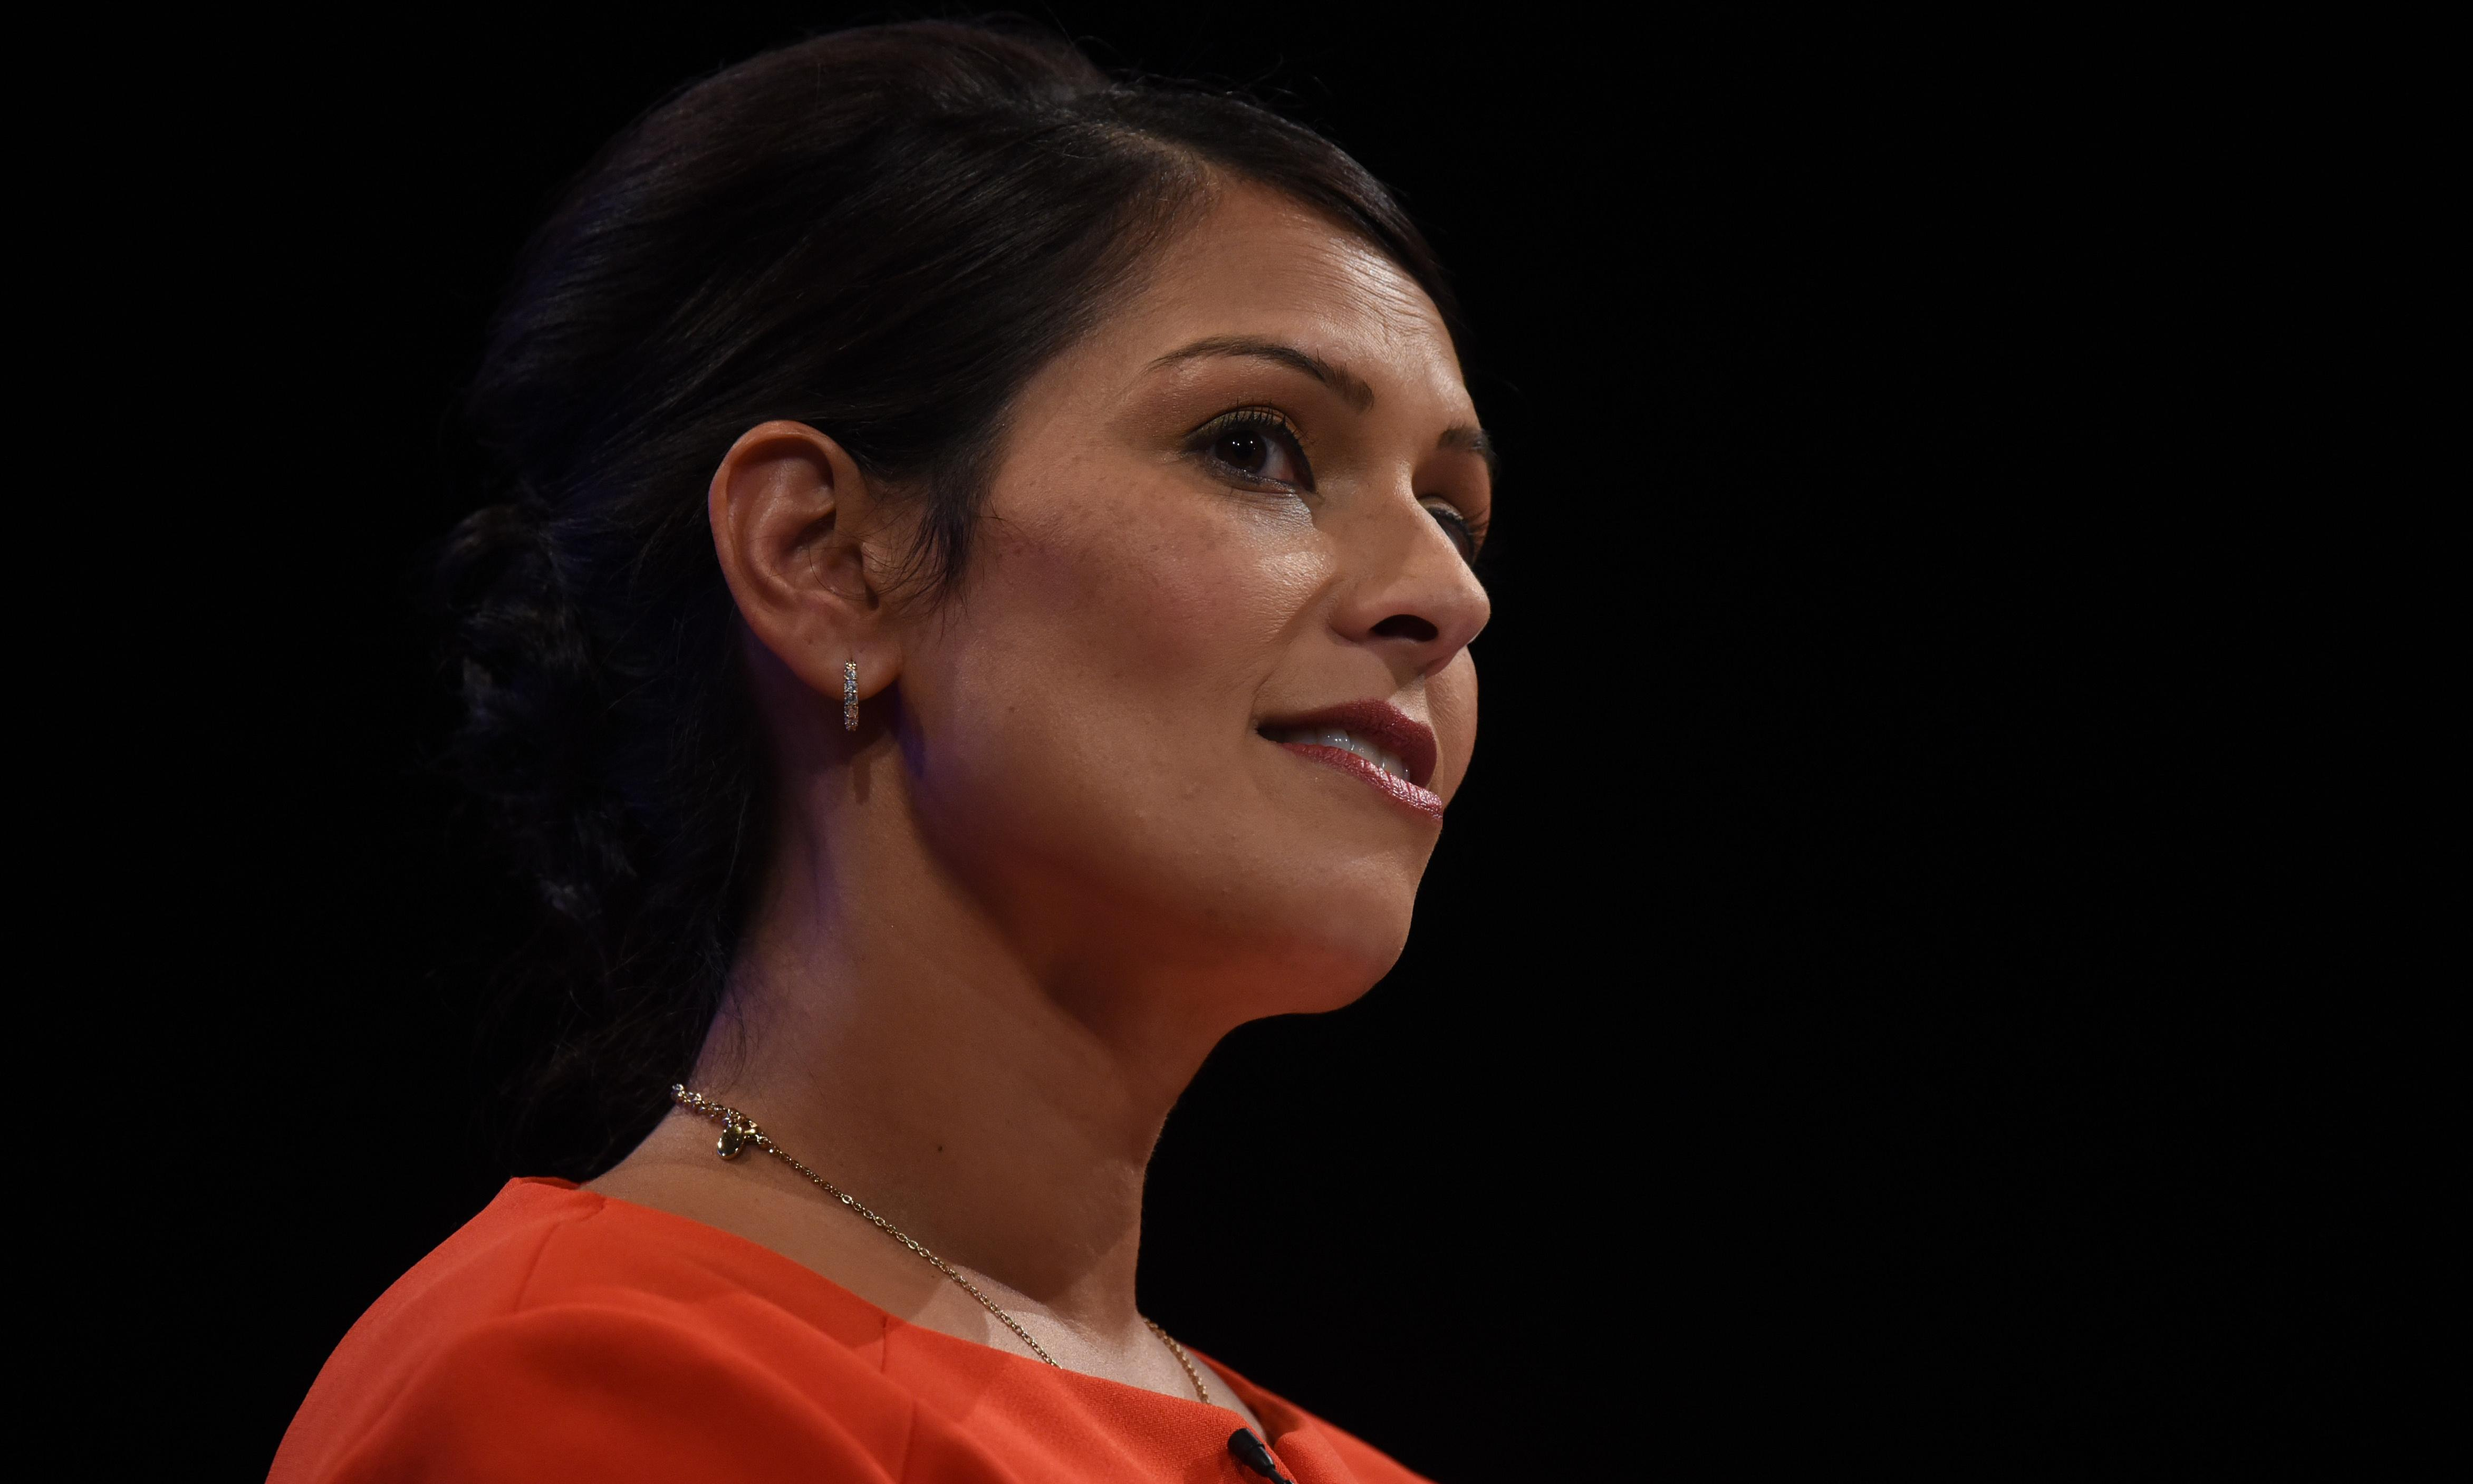 The Priti Patel allegations are turning into a #MeToo moment for the civil service